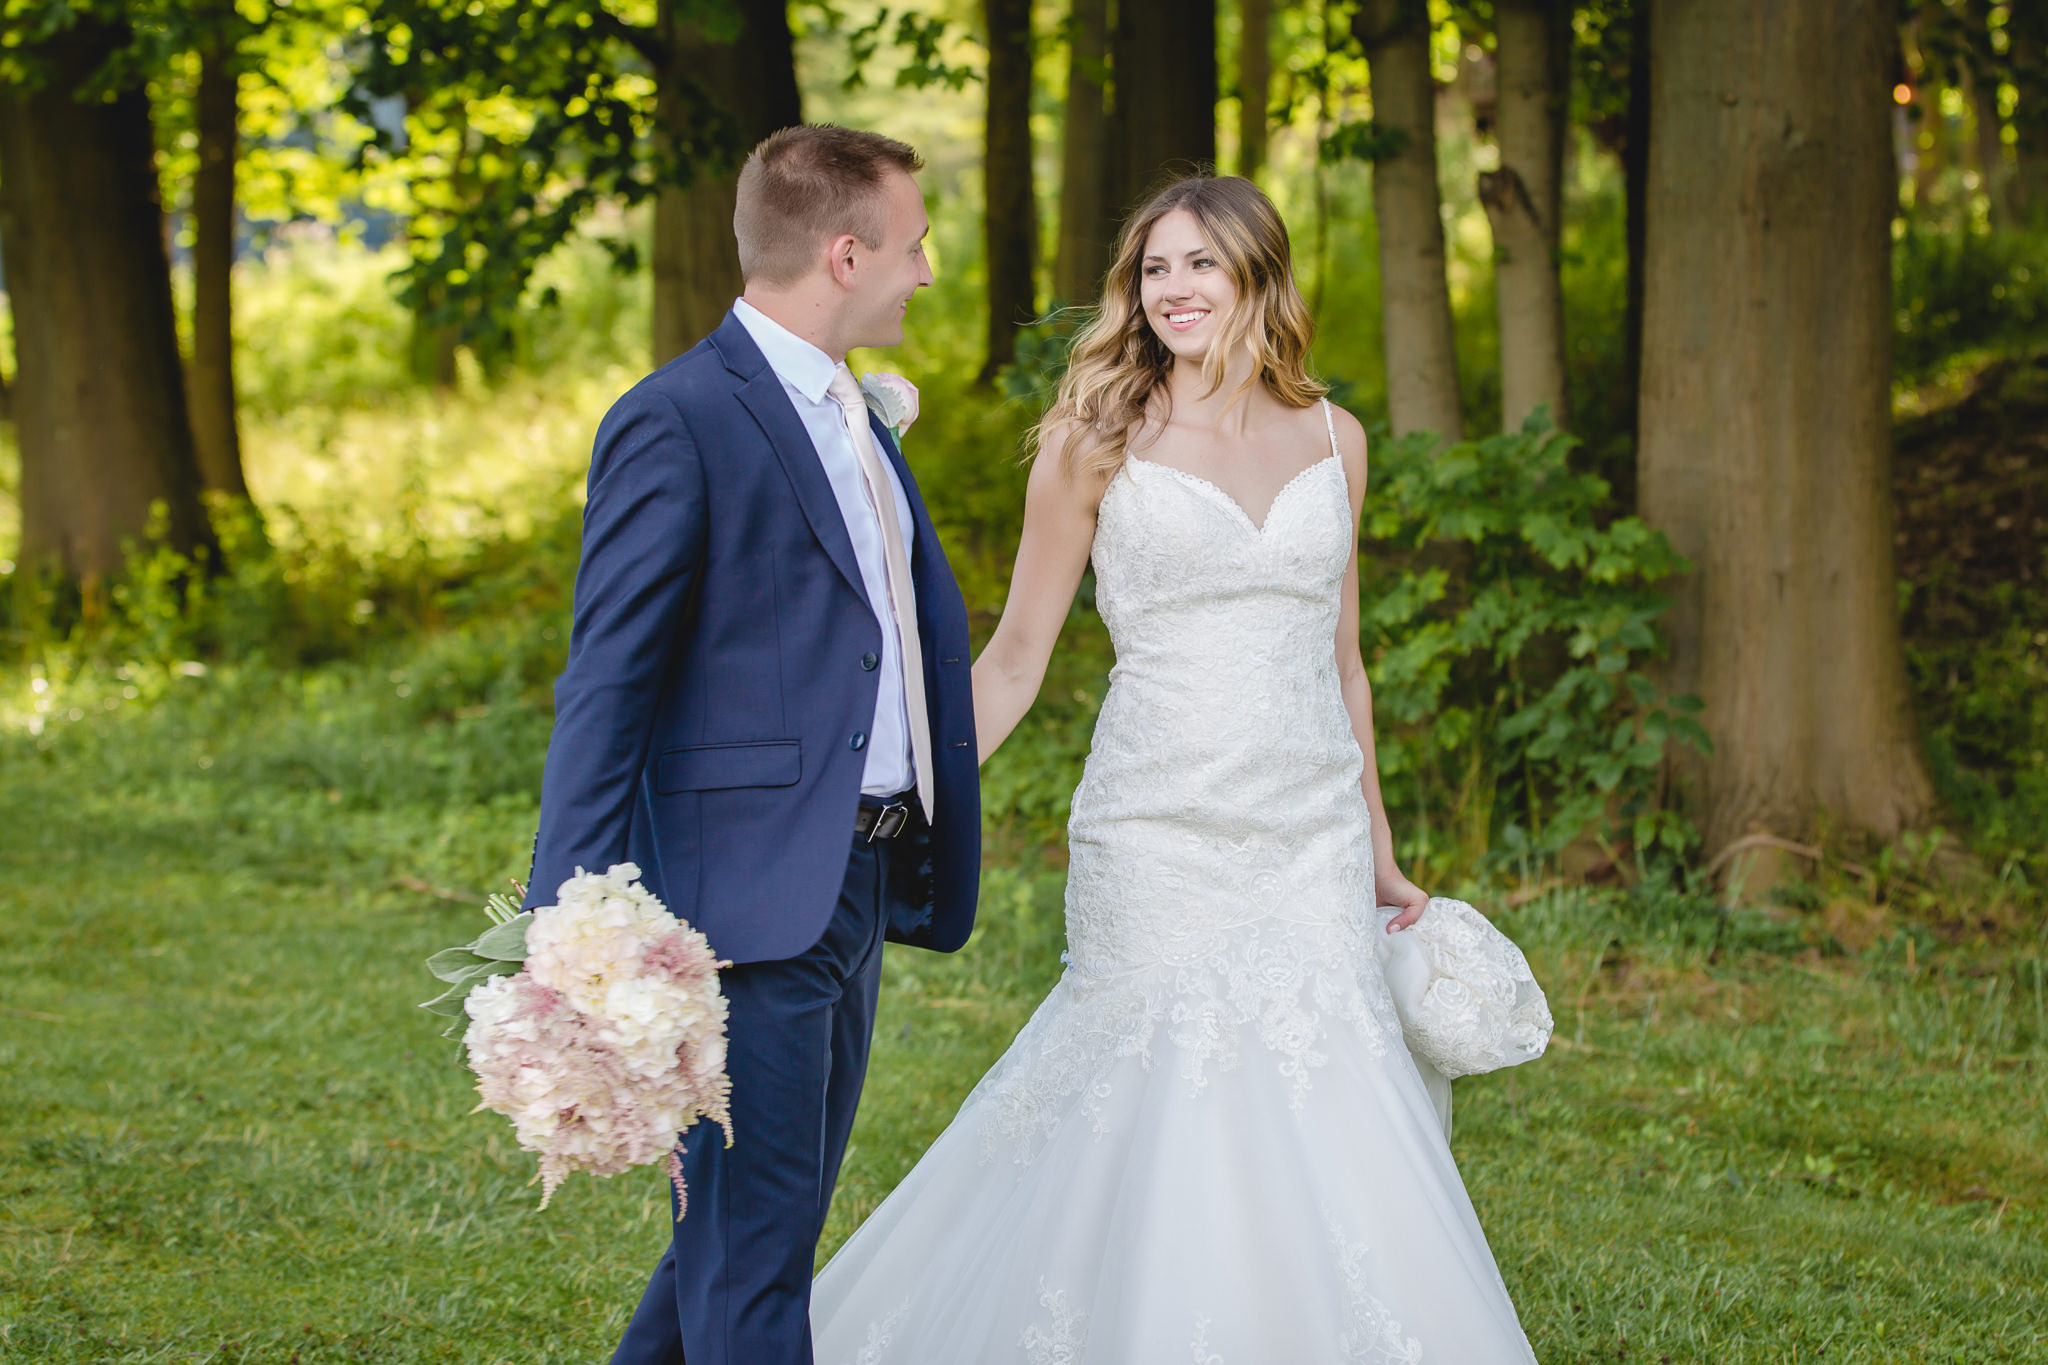 Bride and groom smile at each other during portraits at Hidden Valley Resort